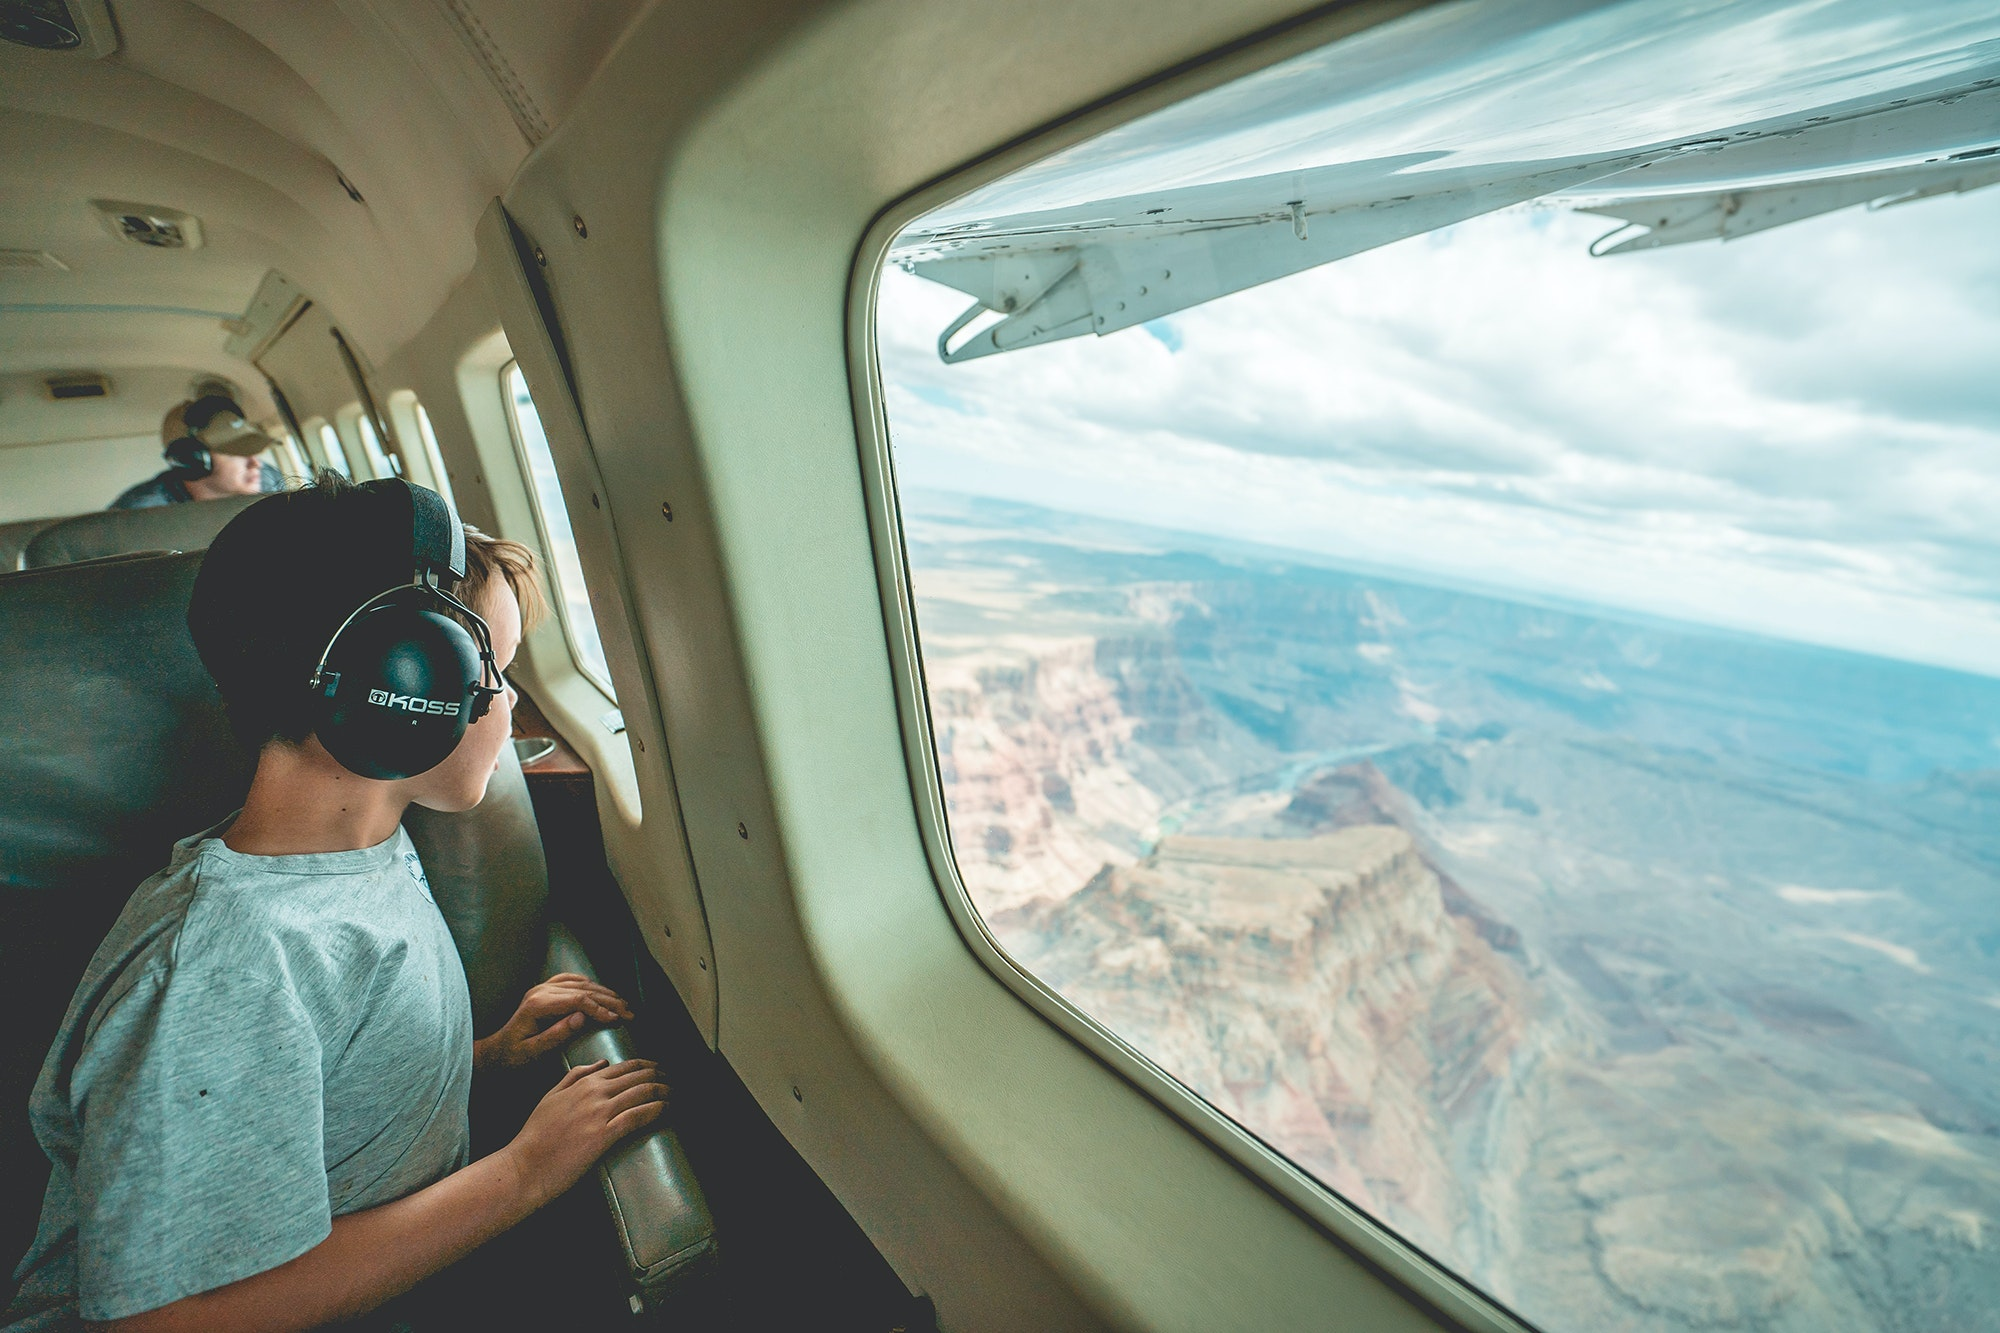 Westwind Air Service offers flightseeing tours of the Grand Canyon from Phoenix Sky Harbor International Airport.